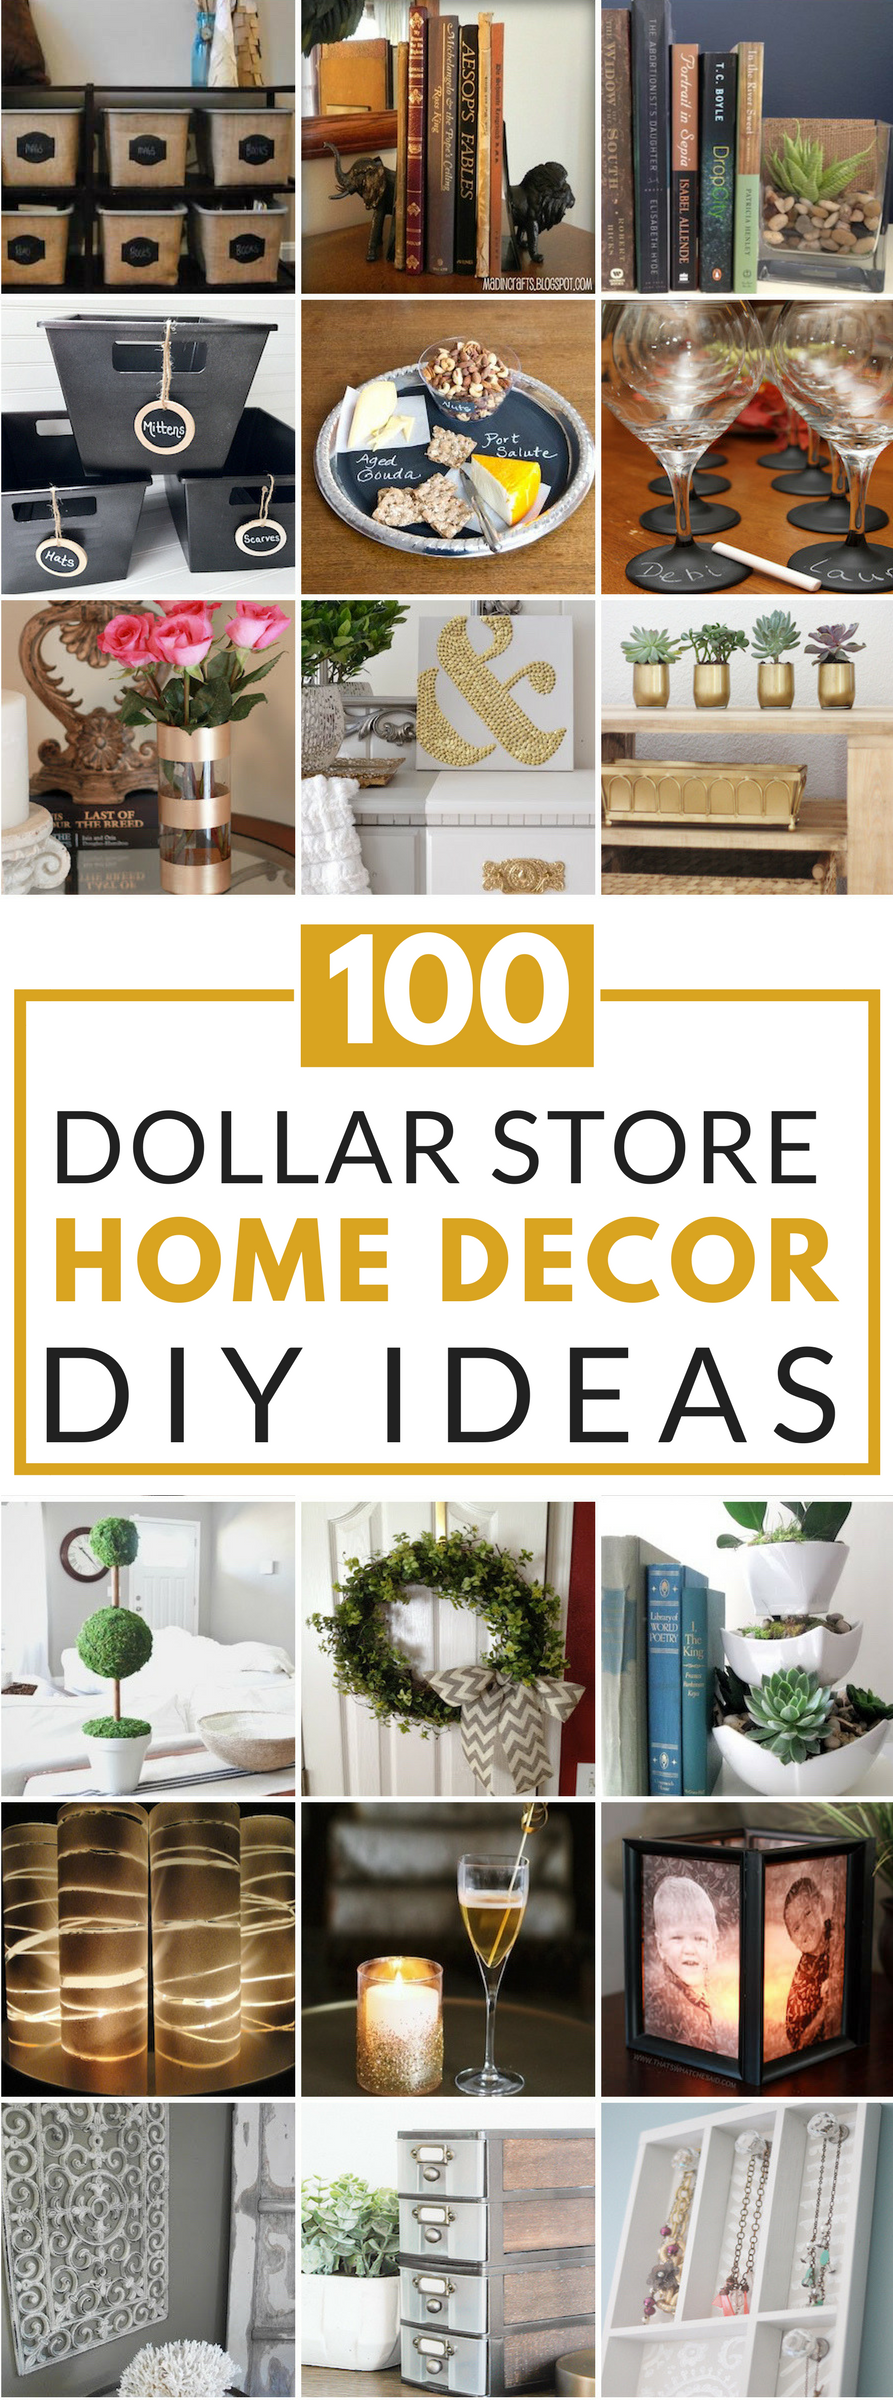 100 dollar store diy home decor ideas prudent penny pincher Home decor hacks pinterest